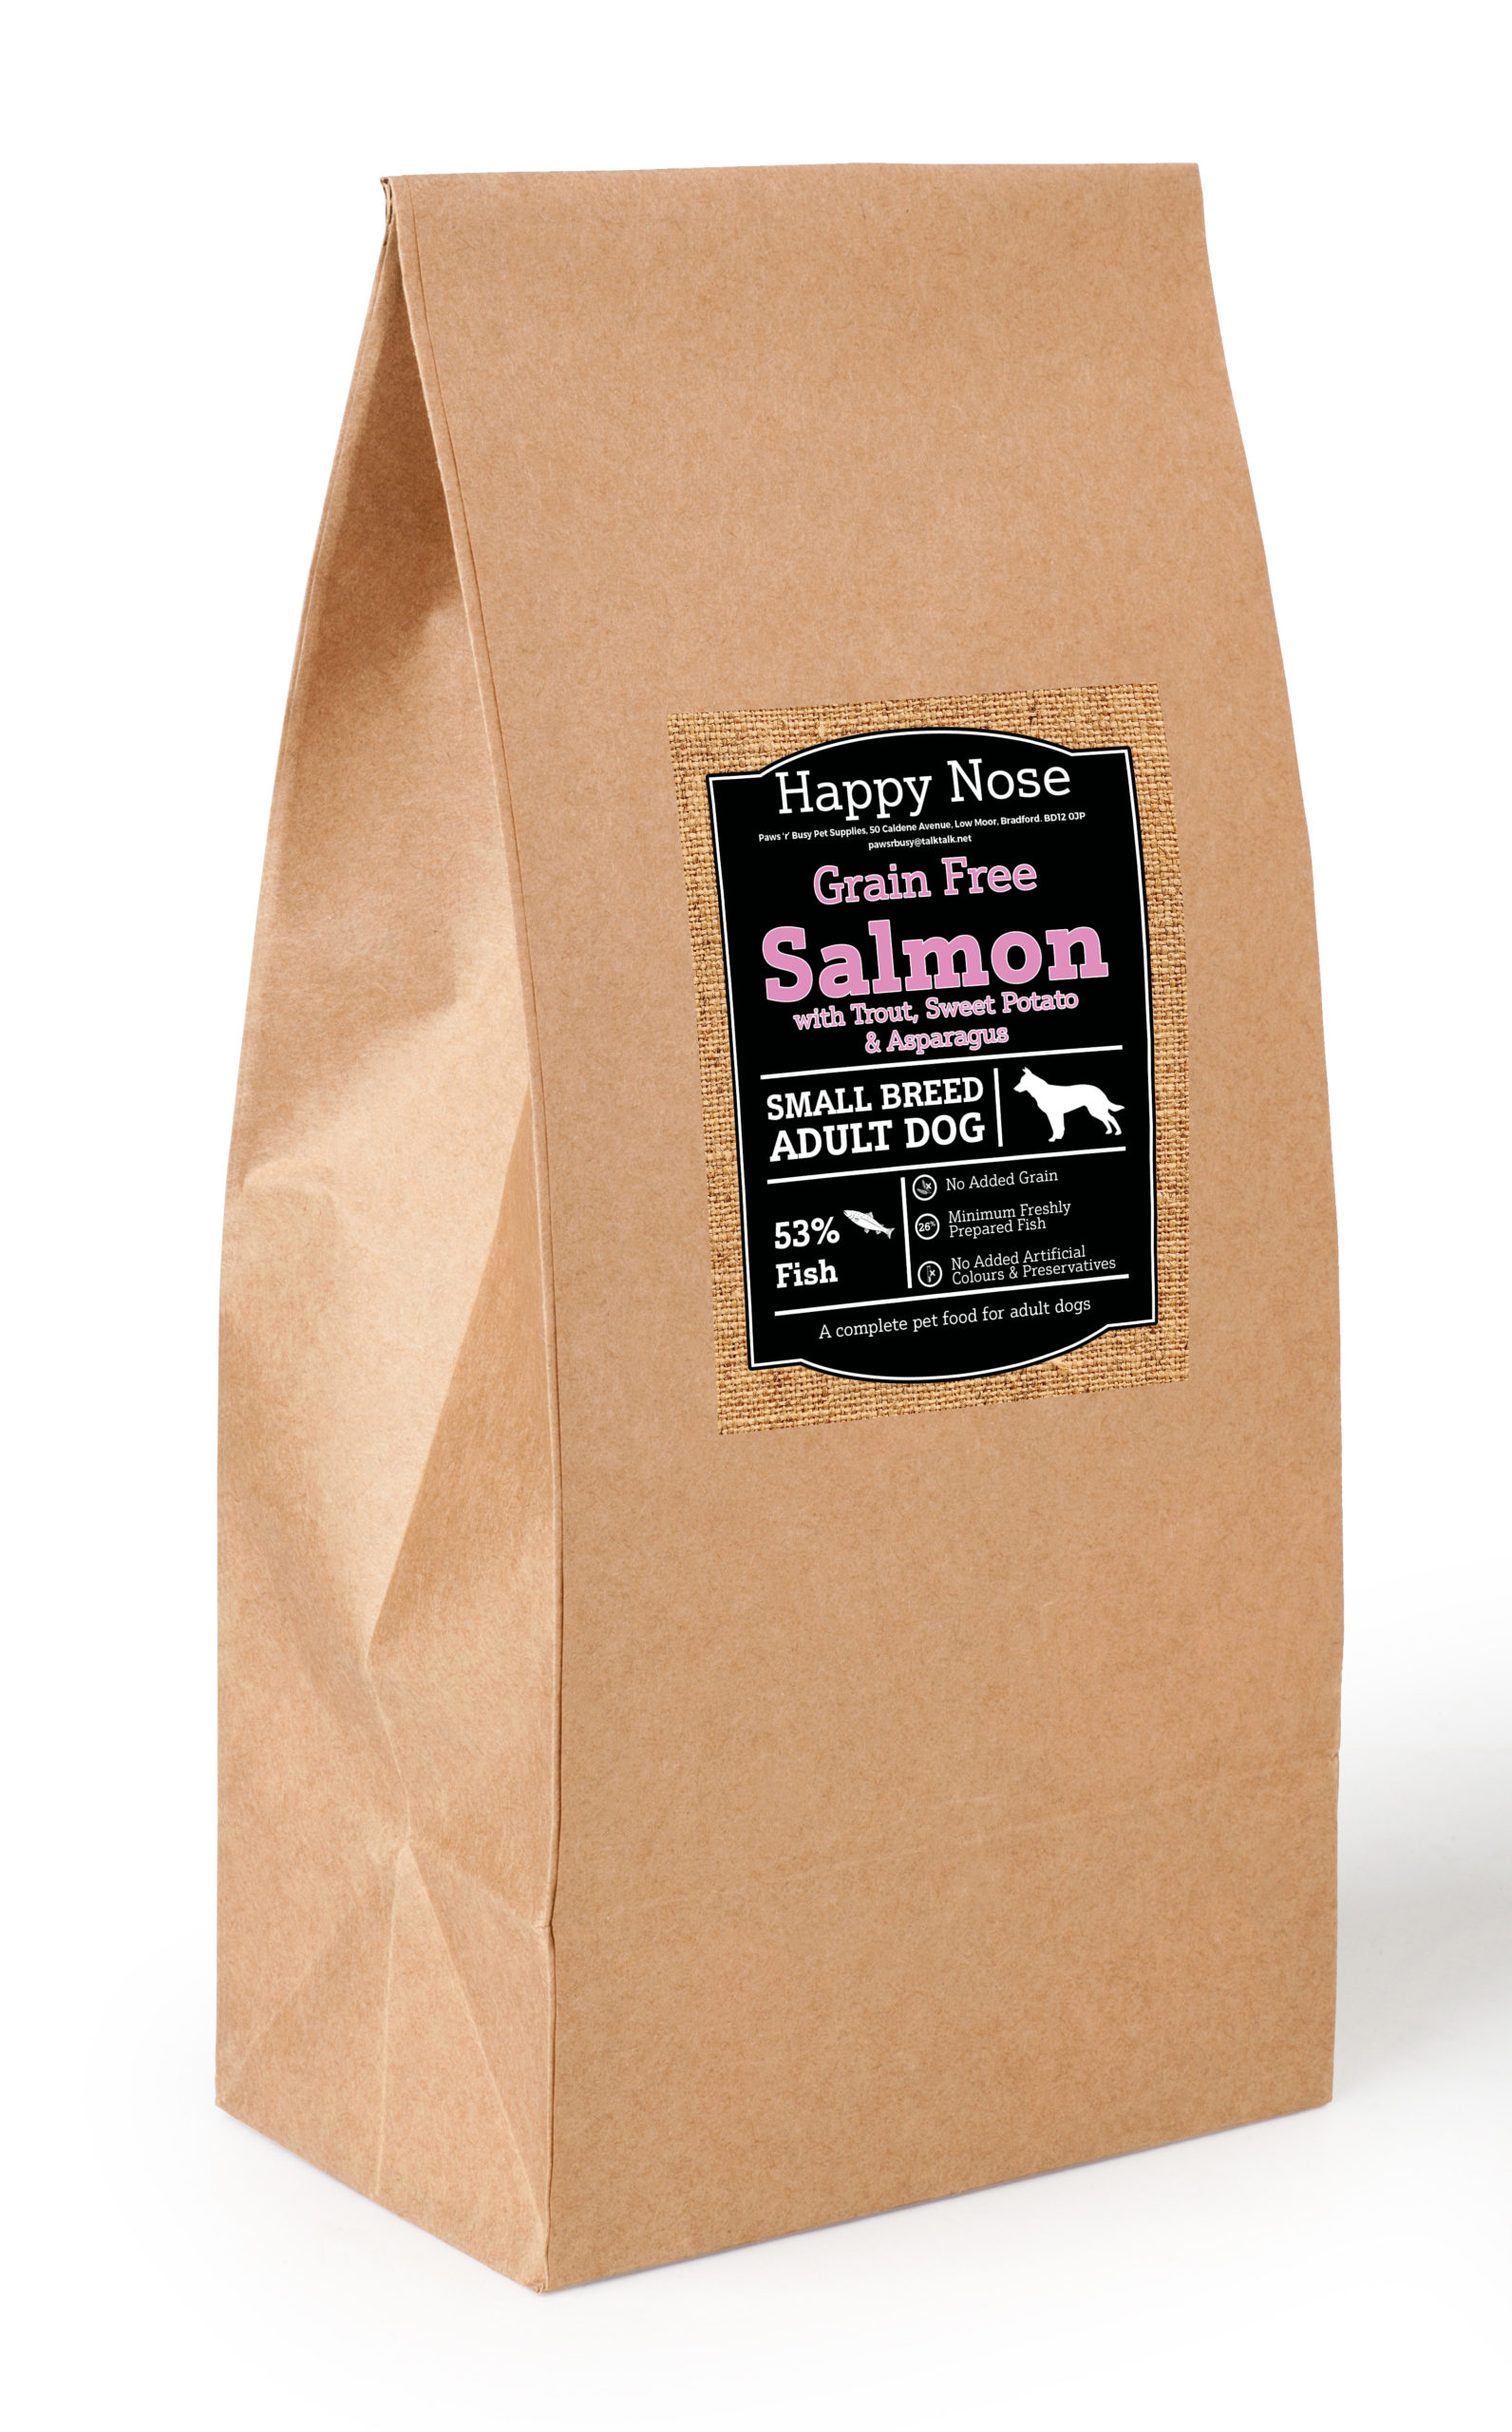 Small Breed Salmon, Trout, Sweet Potato & Asparagus Adult Dog Food